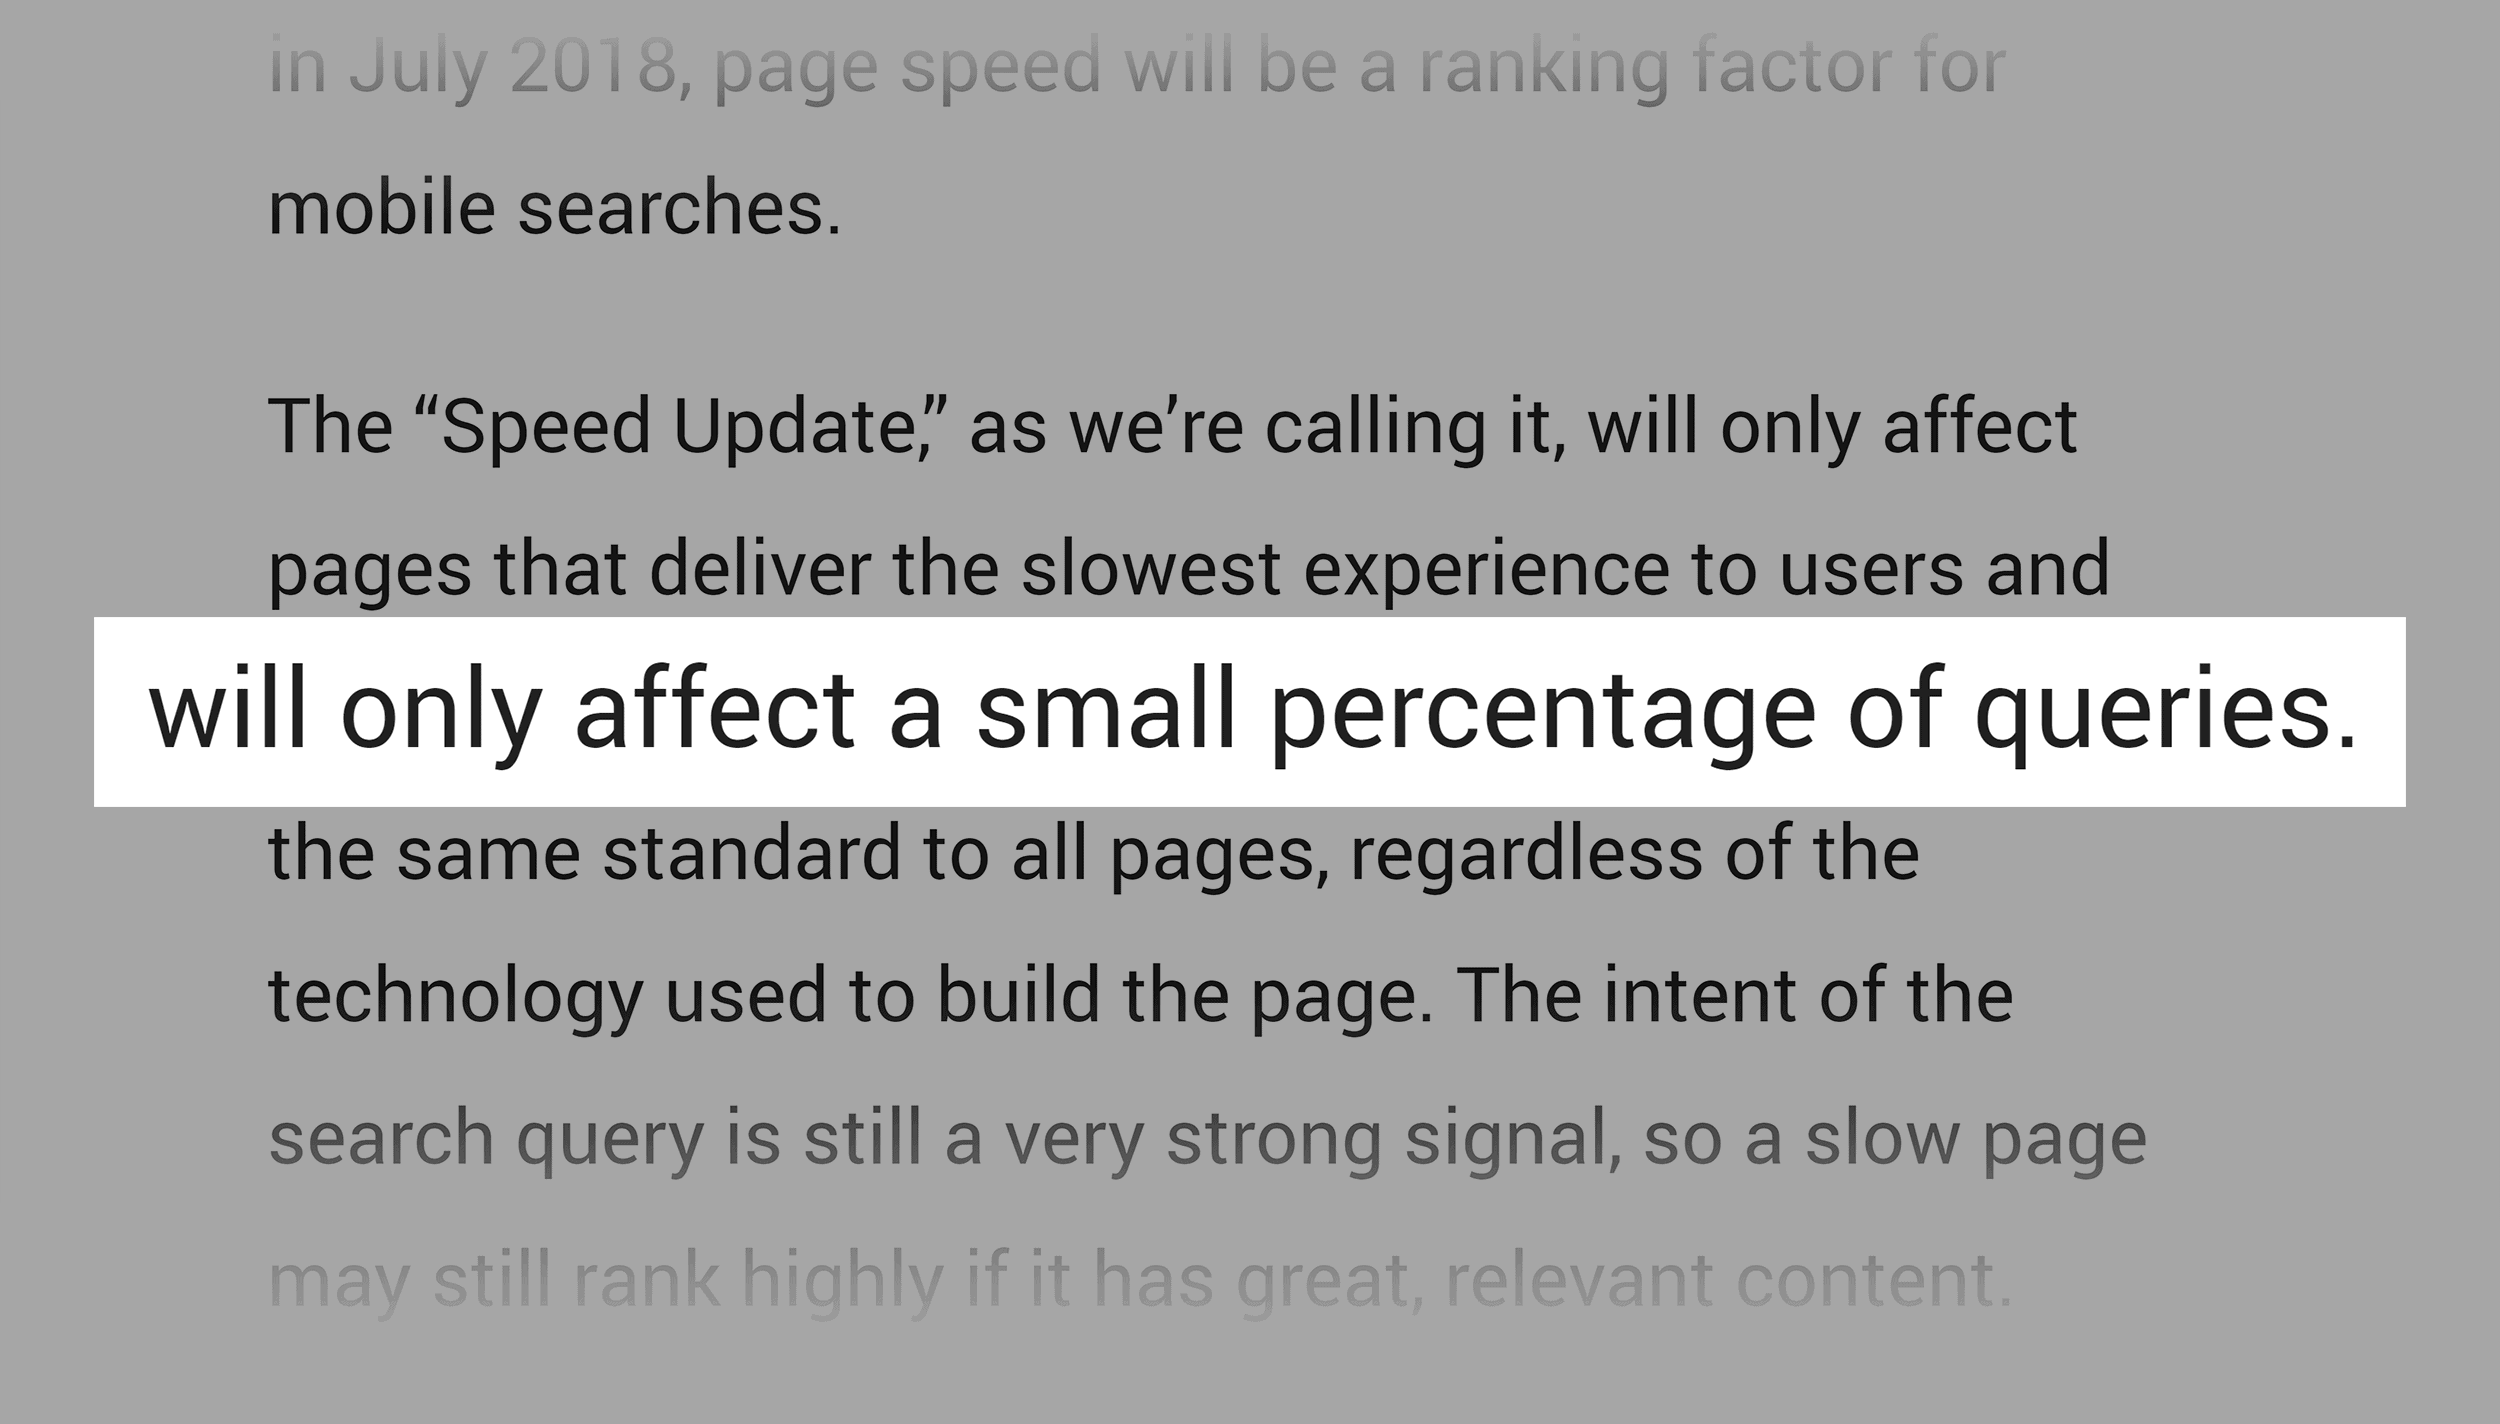 Speed update only affecting small percentage of queries